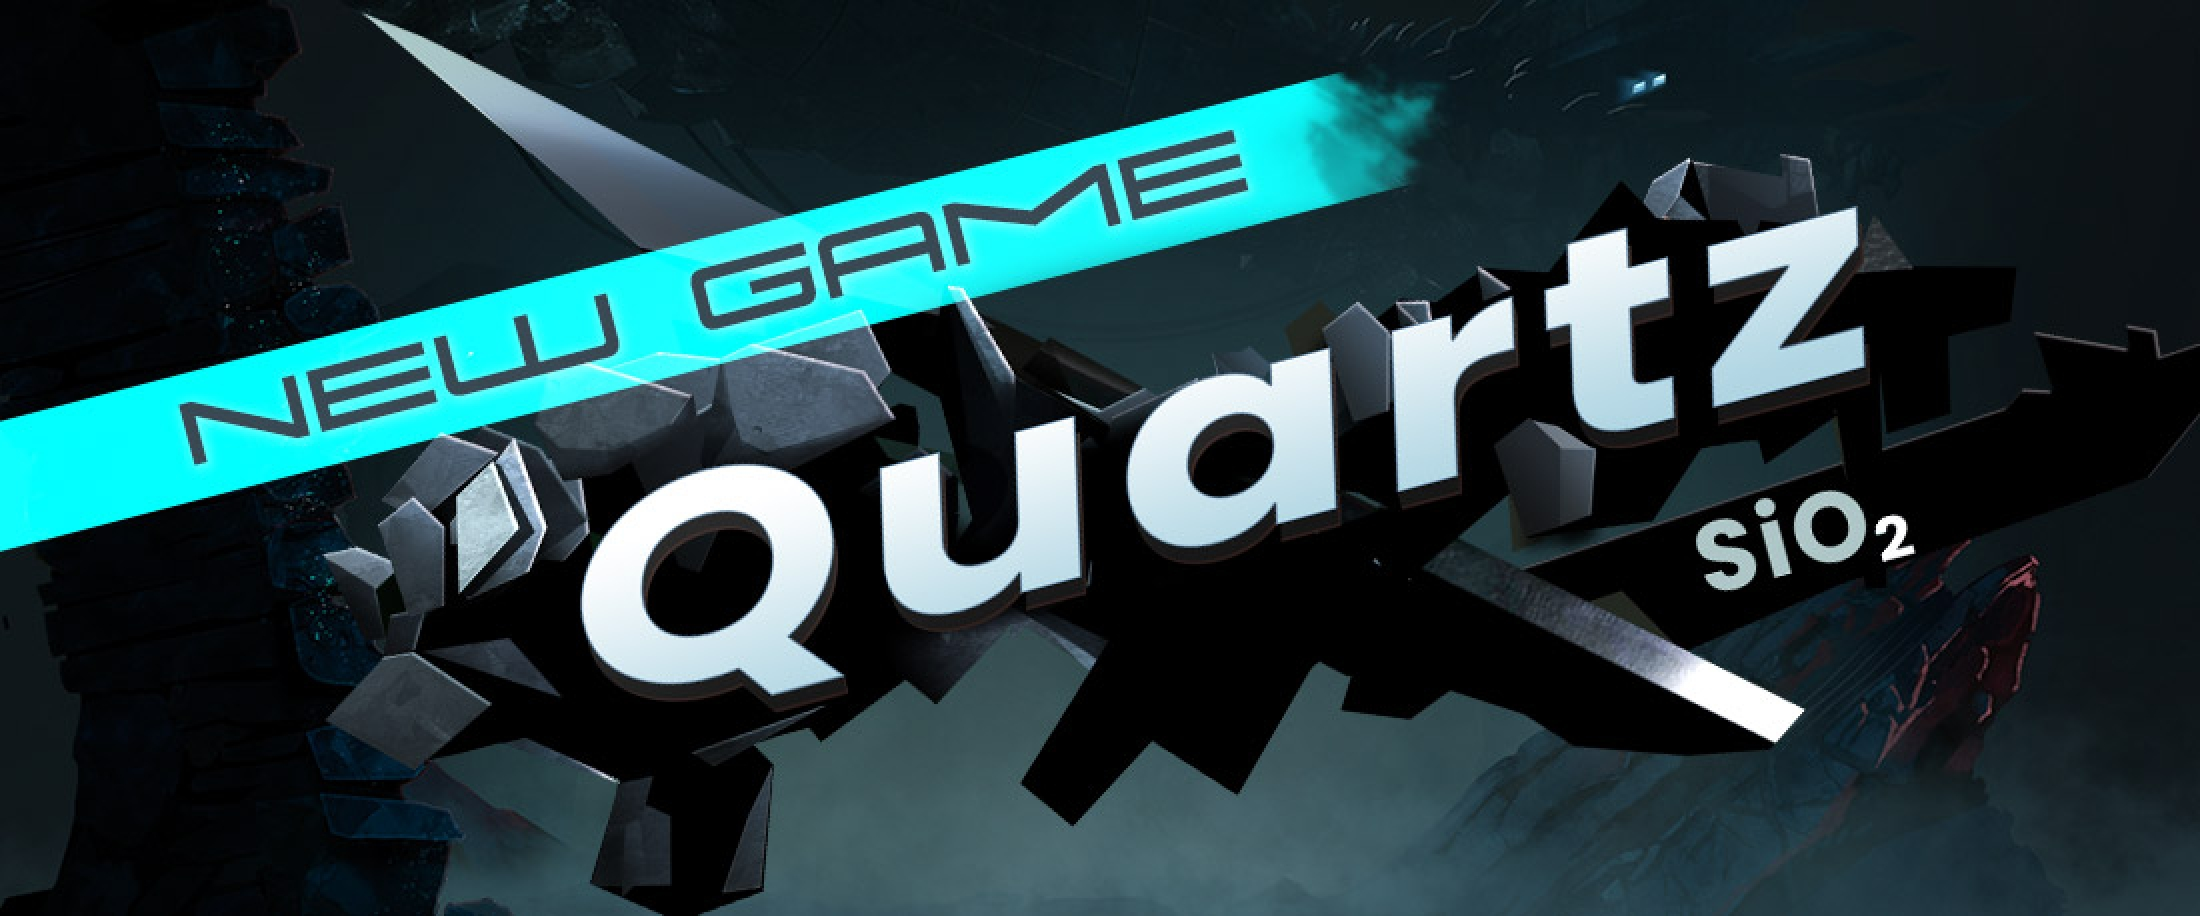 Se Quartz SiO2 Online Slot Demo Game, Lady Luck Games